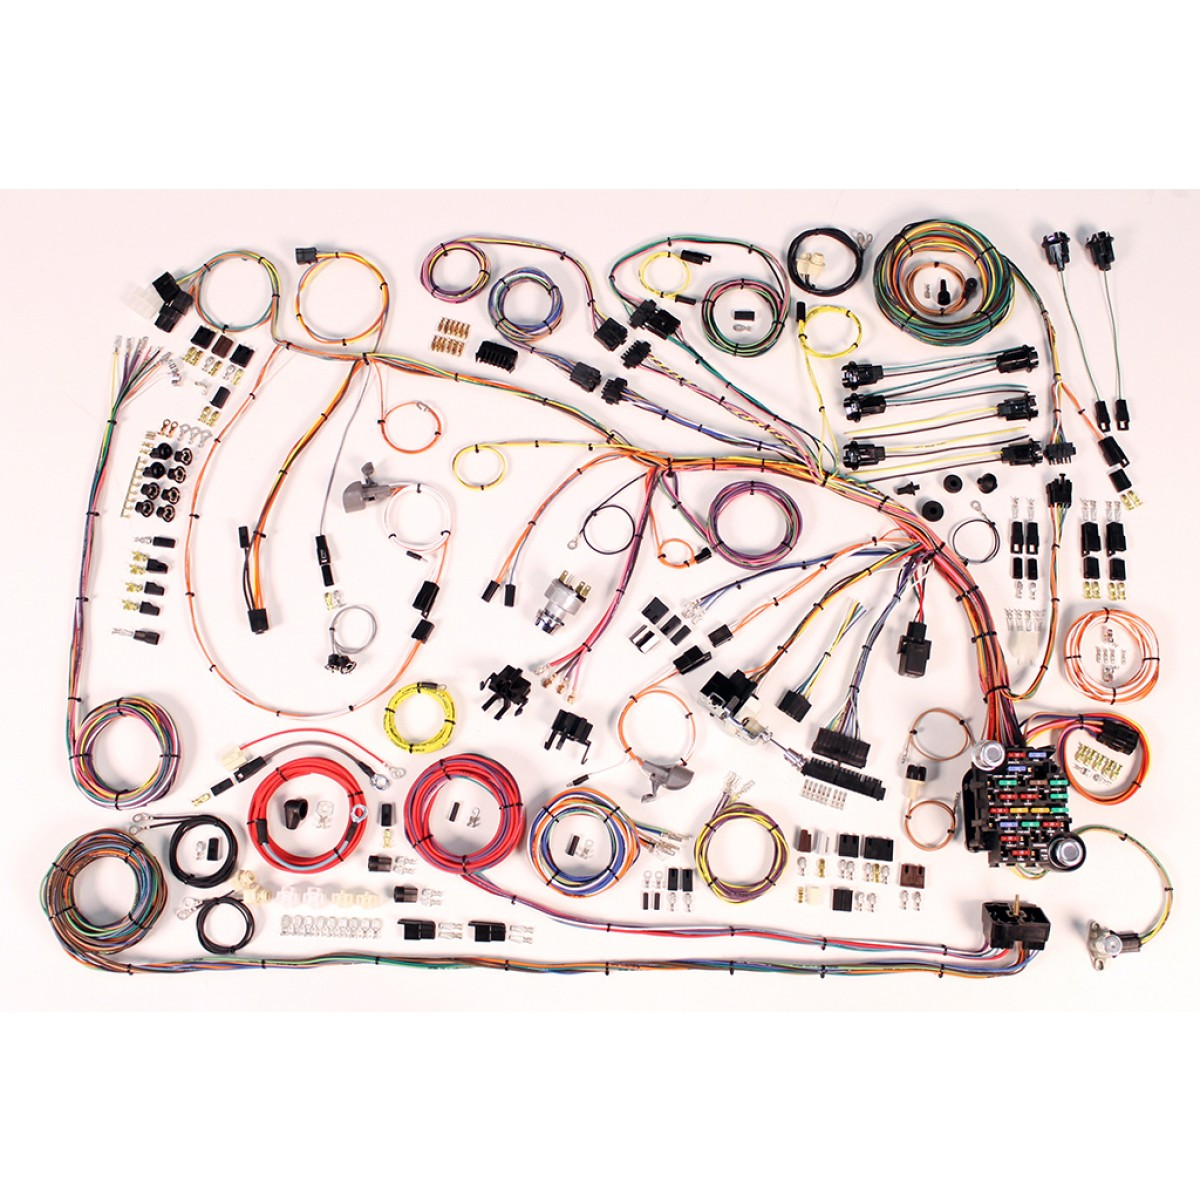 wiring harness kit 1966 1968 impala part 510372 66 68 impala full wire harness 510372 1966 1968 impala wire harness complete wiring harness kit 1966 1968 camaro complete wiring harness at n-0.co